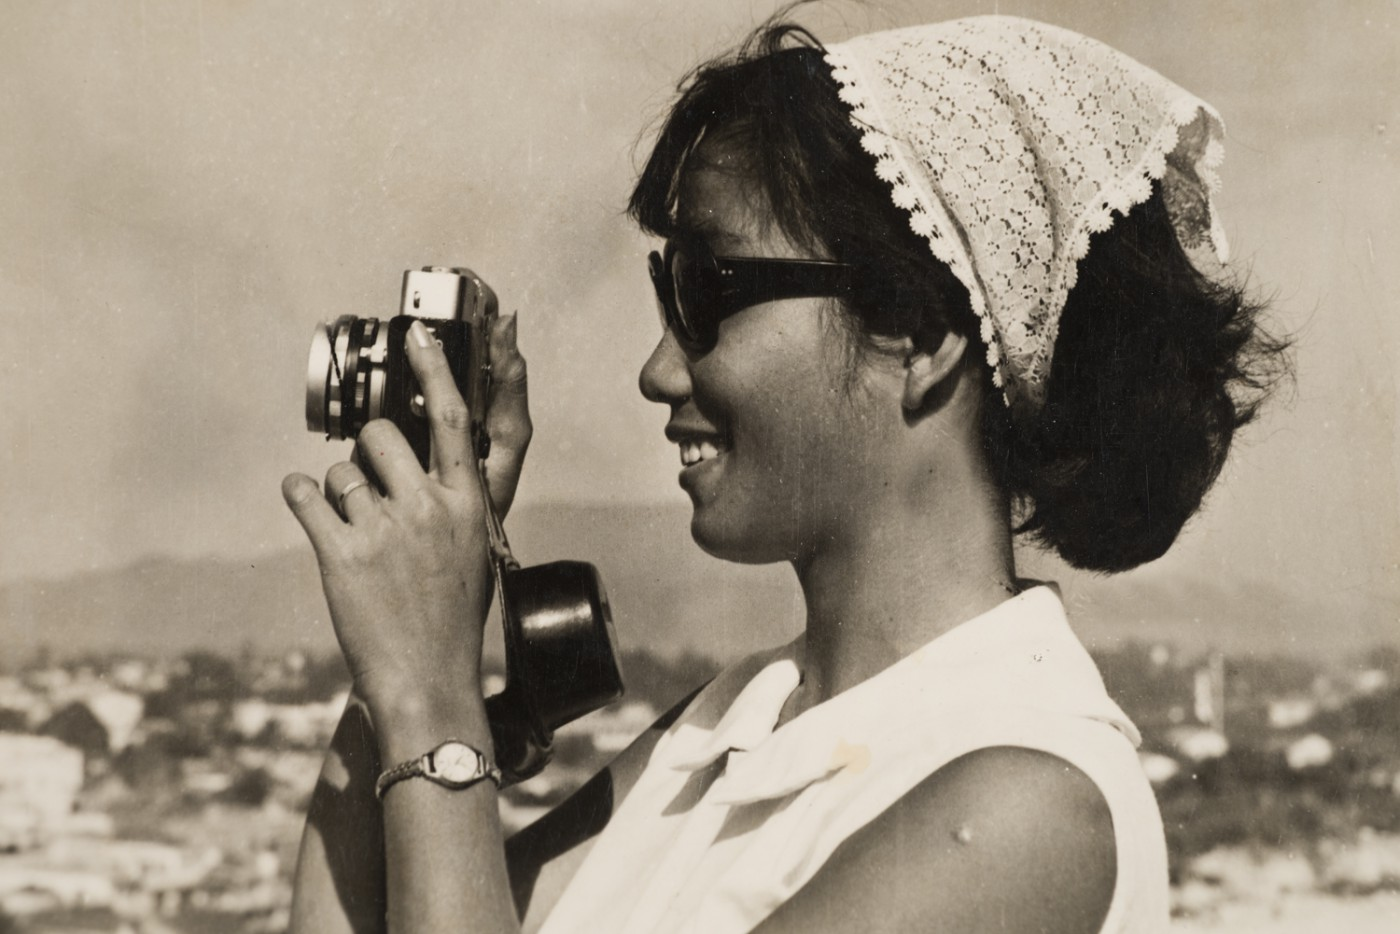 Sang Thai, </span><span><em>Luong with a 35mm camera, Nha Trang, Khánh Hòa, Vietnam</em>, </span><span>1962. Gelatin silver print. Courtesy of the Lu-Thai family.